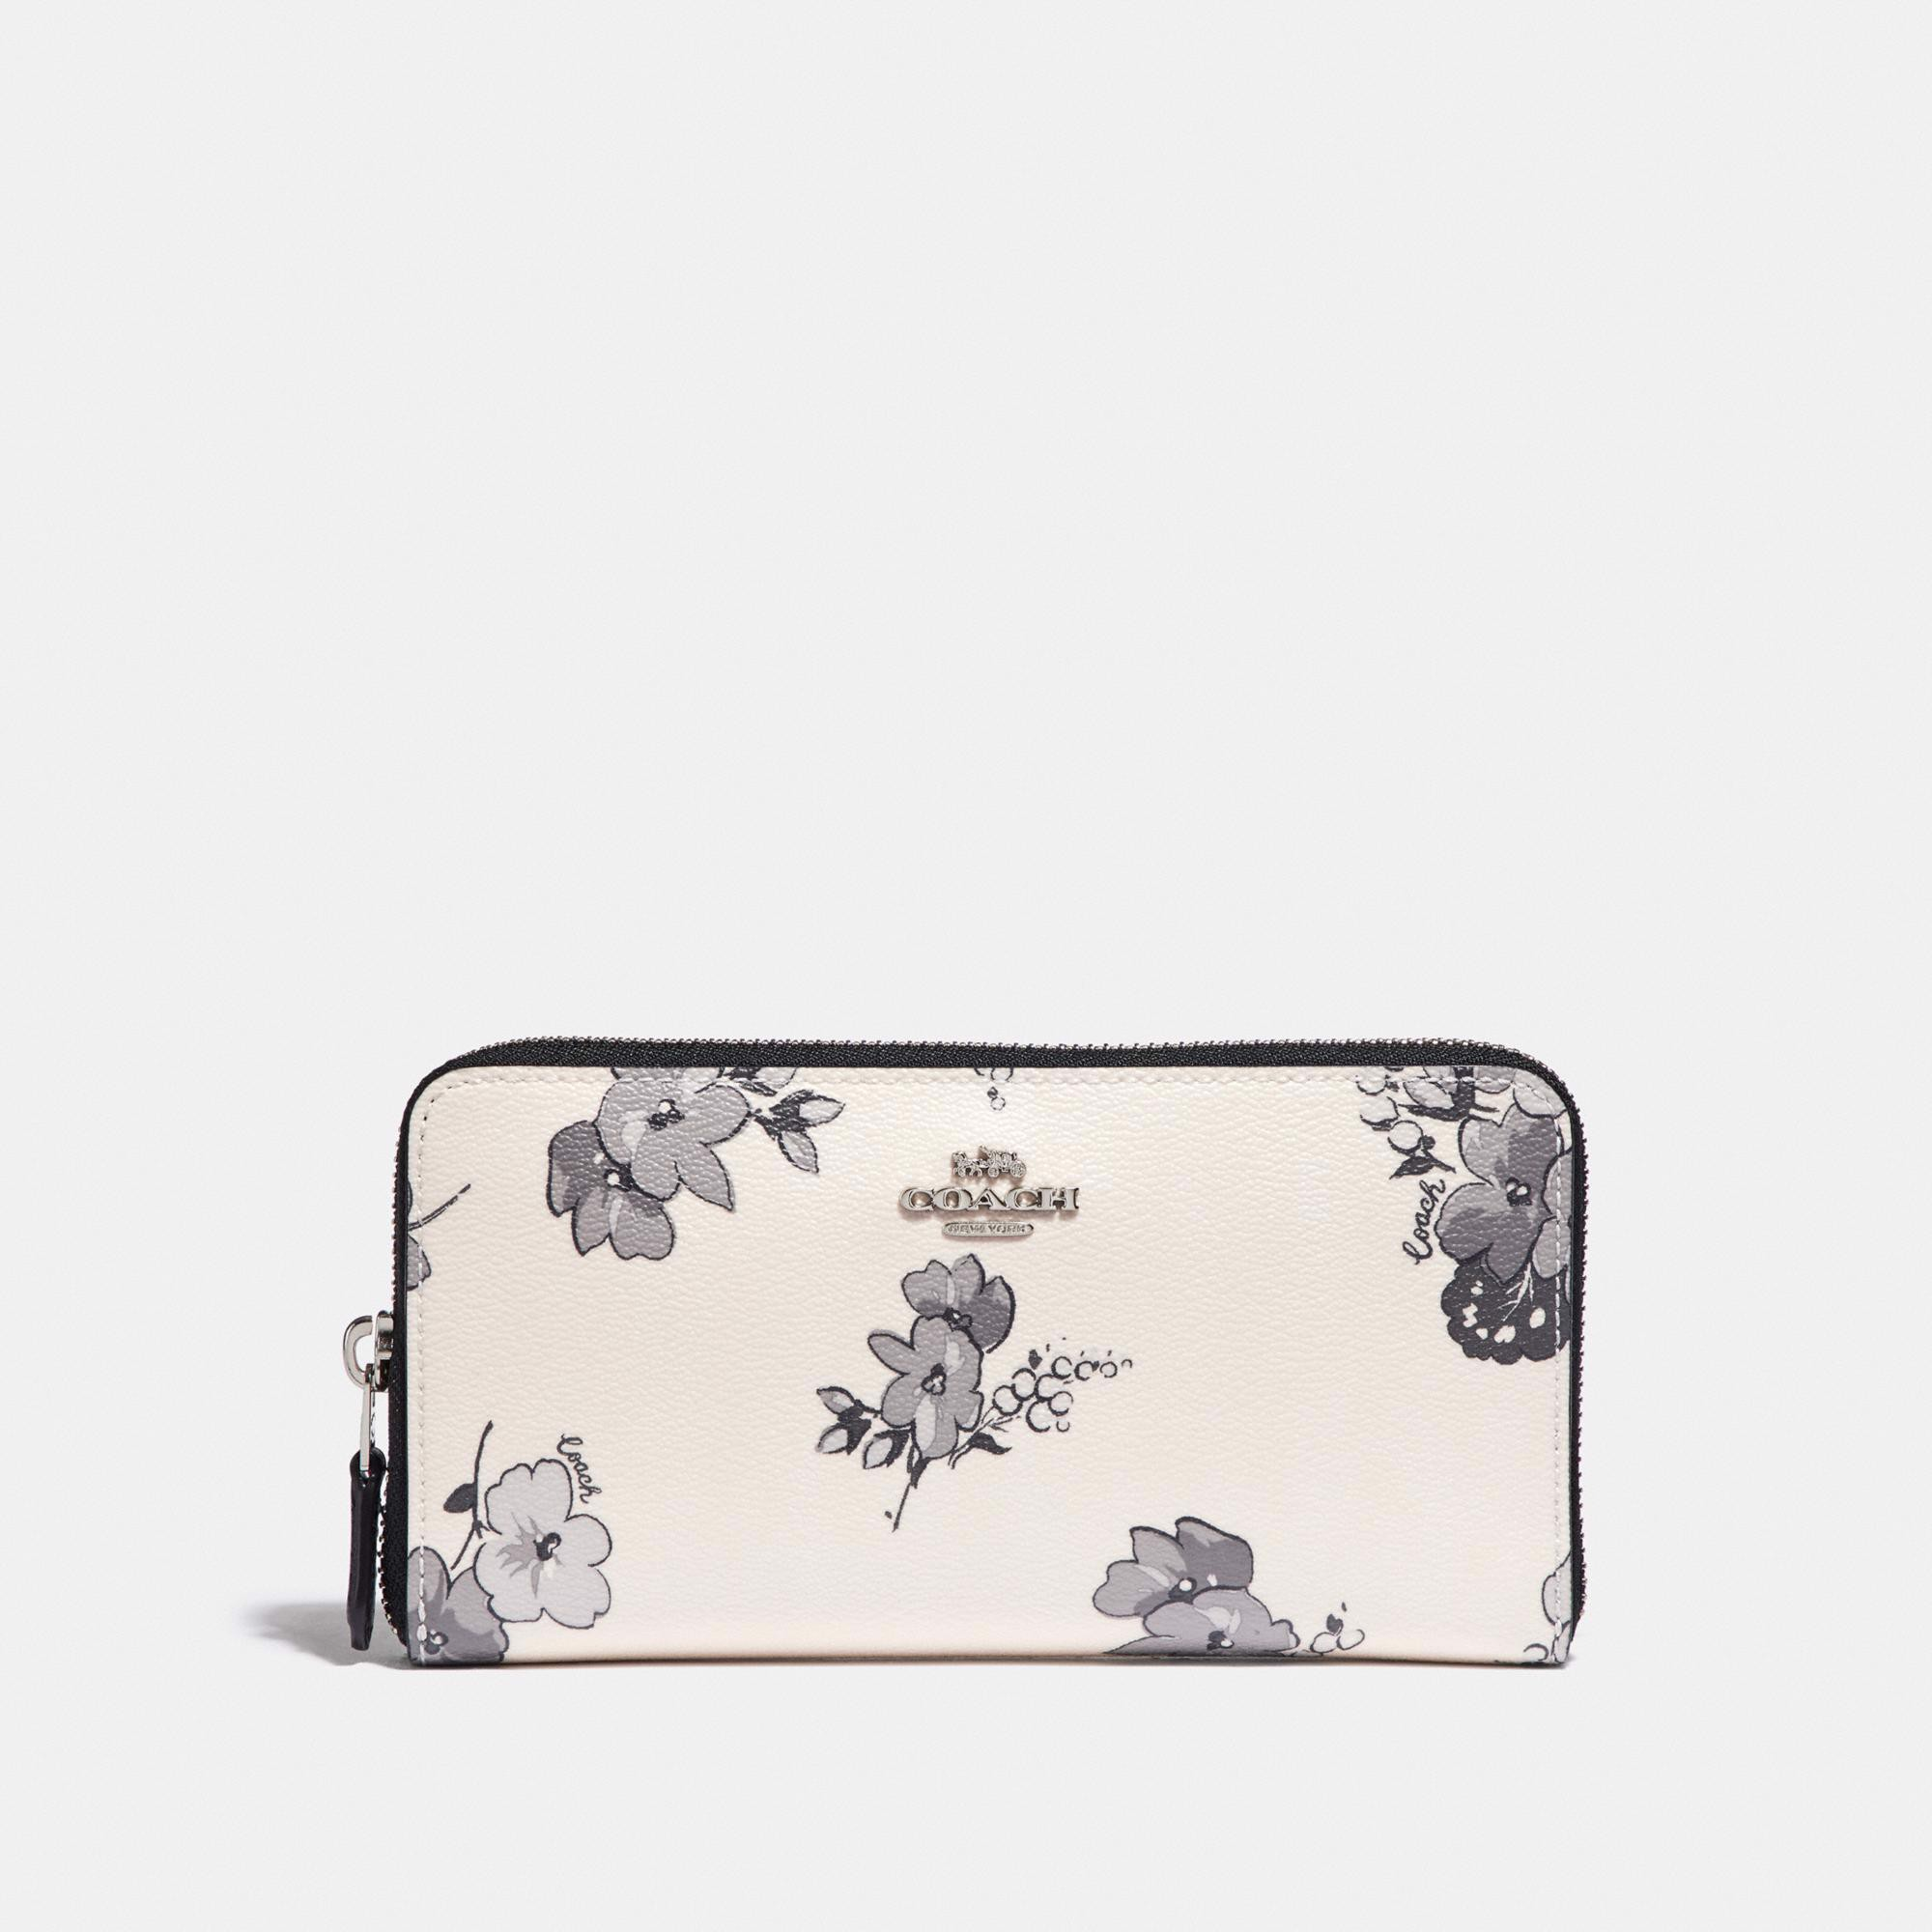 Coach Accordion Zip Wallet with Fairy Tale Floral Print